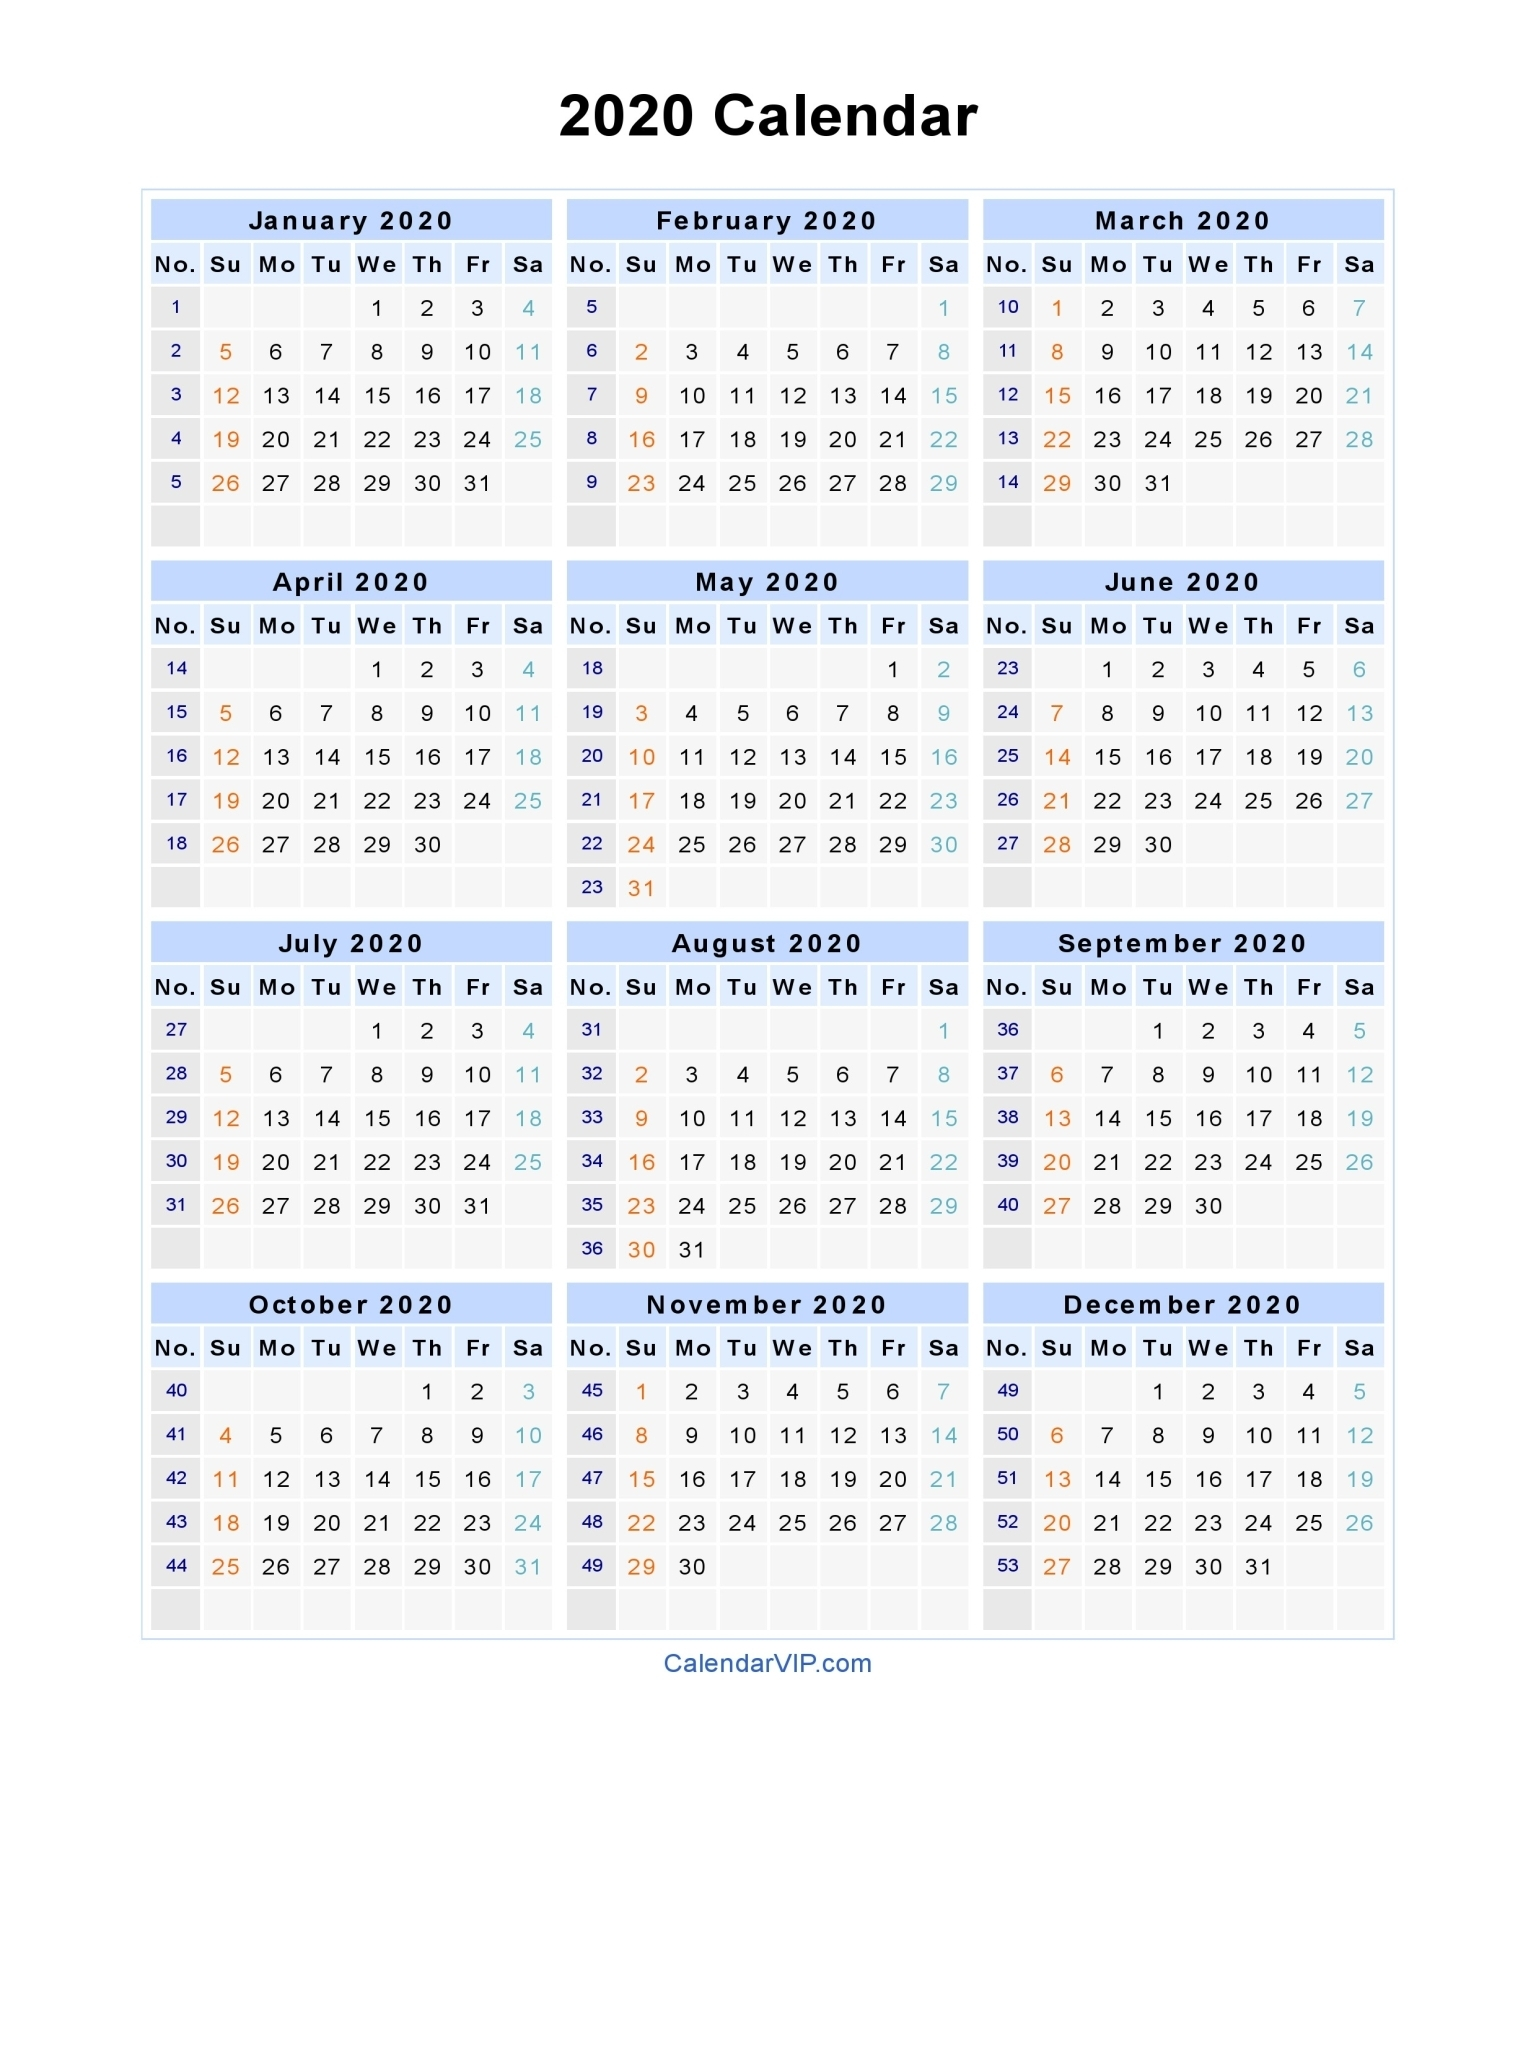 2020 Calendar - Blank Printable Calendar Template In Pdf Word Excel with regard to 2020 Week Wise Calendar